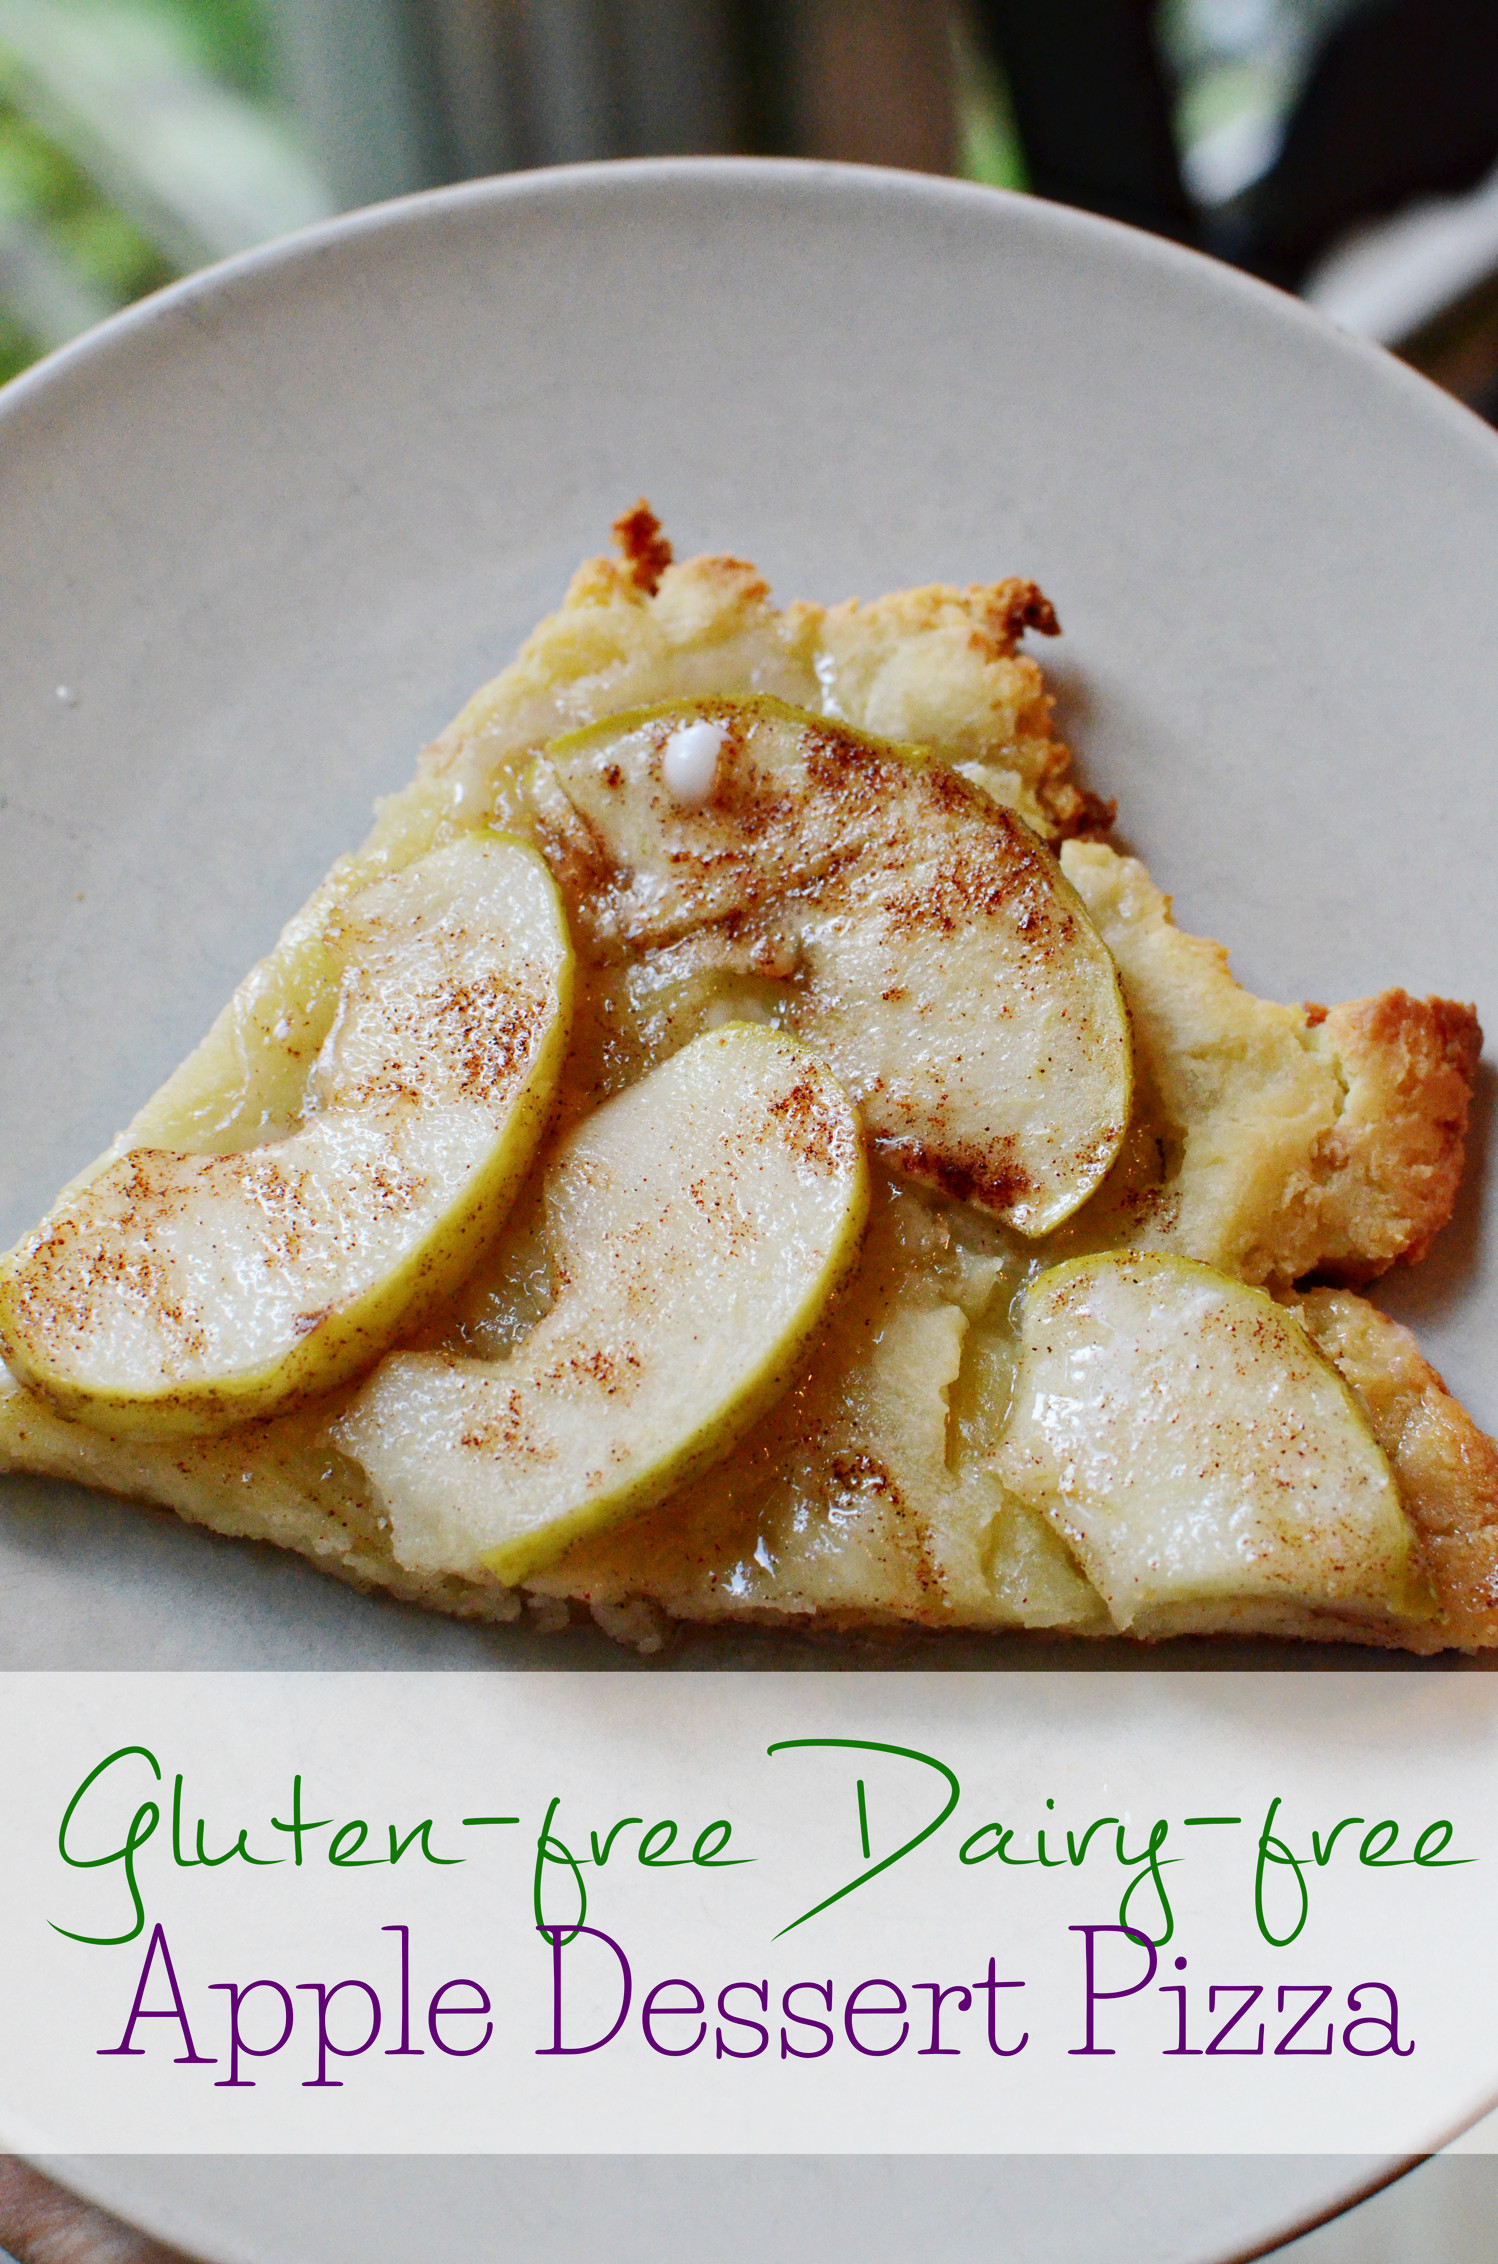 Gluten Free Apple Desserts  Gluten Free Dairy Free Apple Dessert Pizza